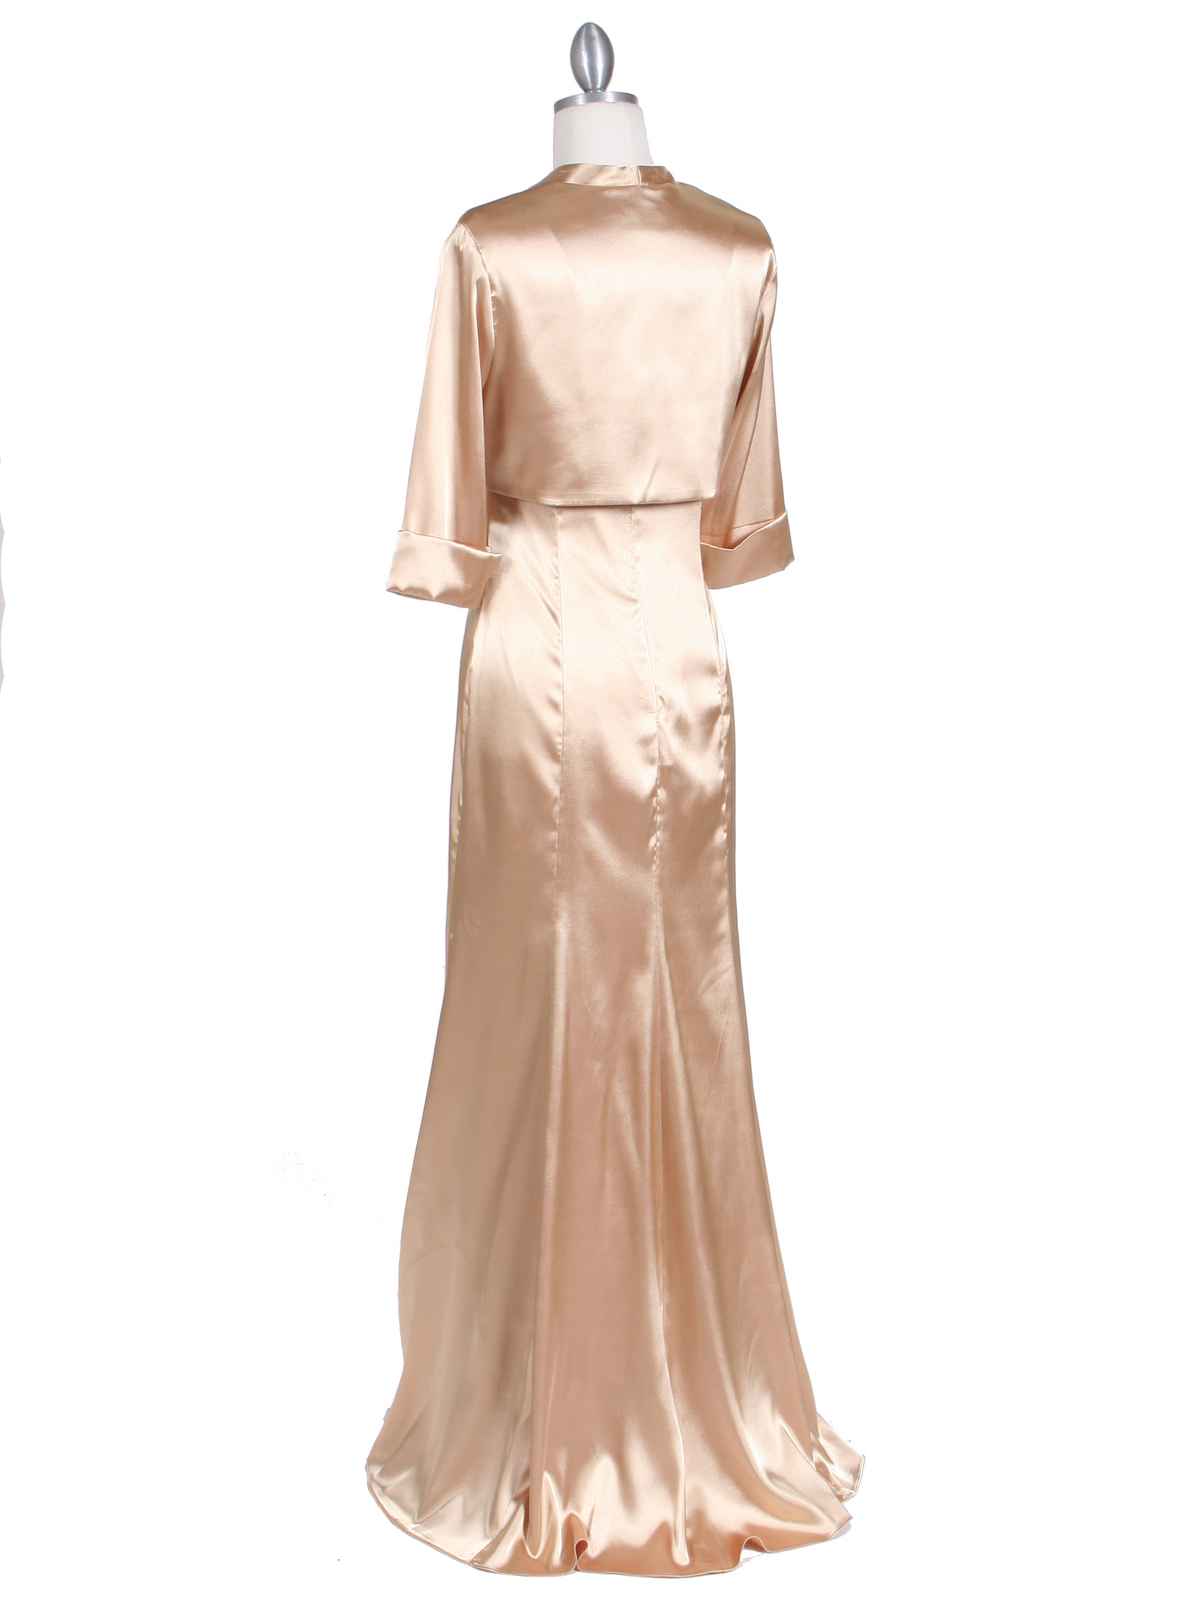 Gold Charmeuse Evening Dress With Bolero Jacket Sung